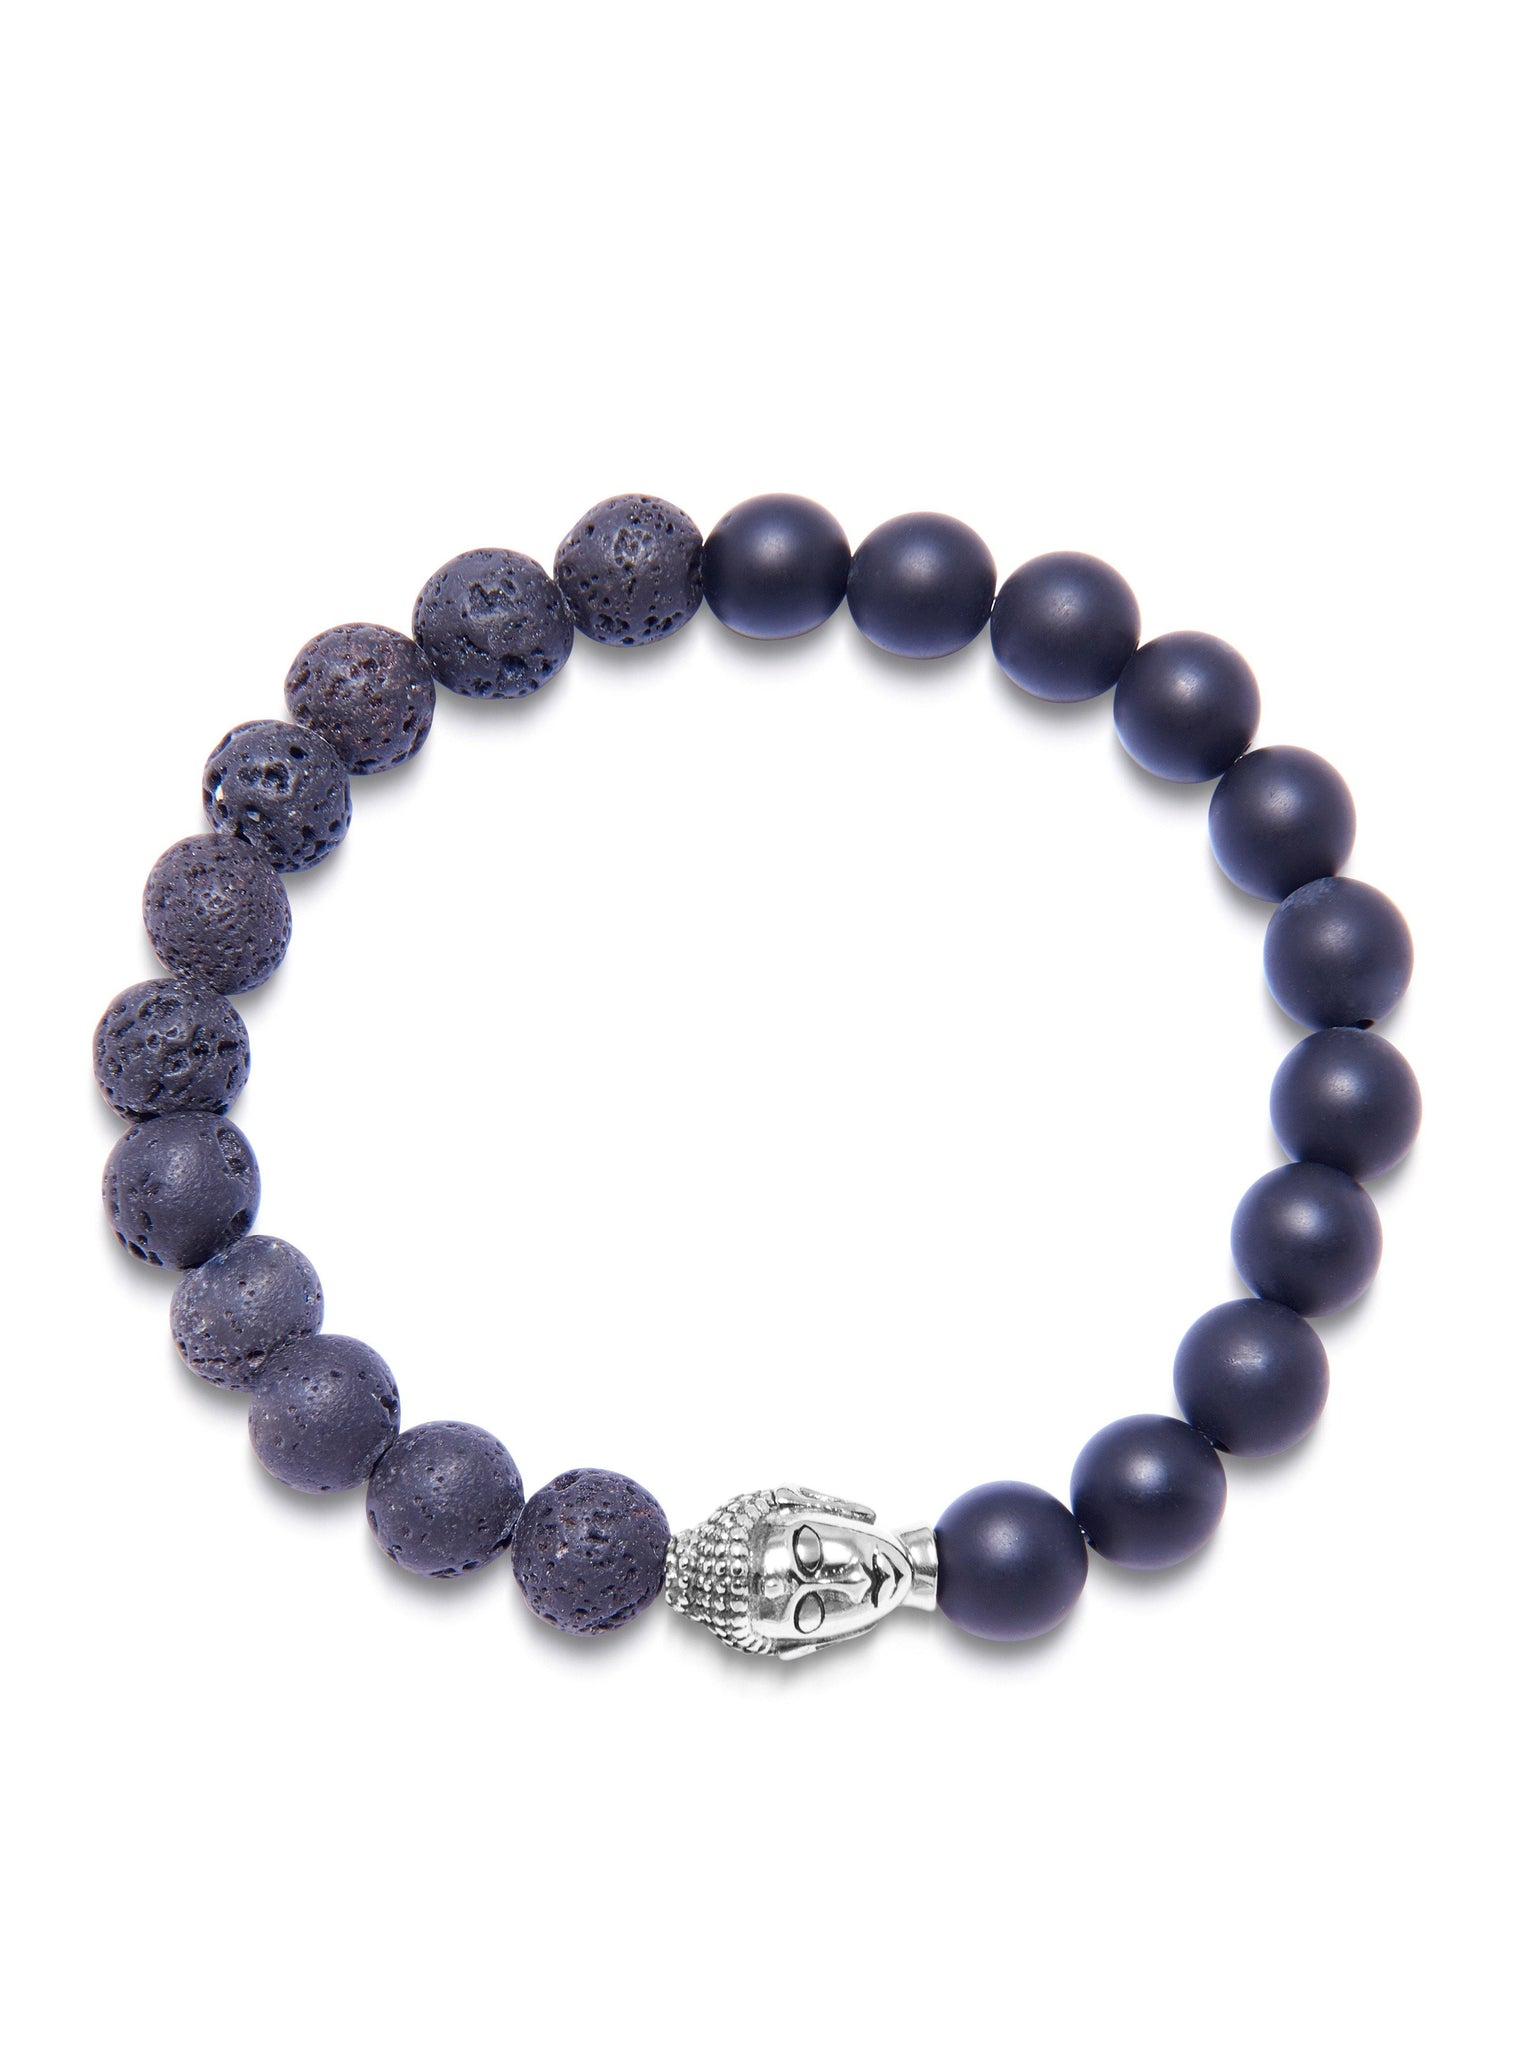 Men's Wristband with Matte Onyx and Lava Stone with Silver Buddha - Nialaya Jewelry